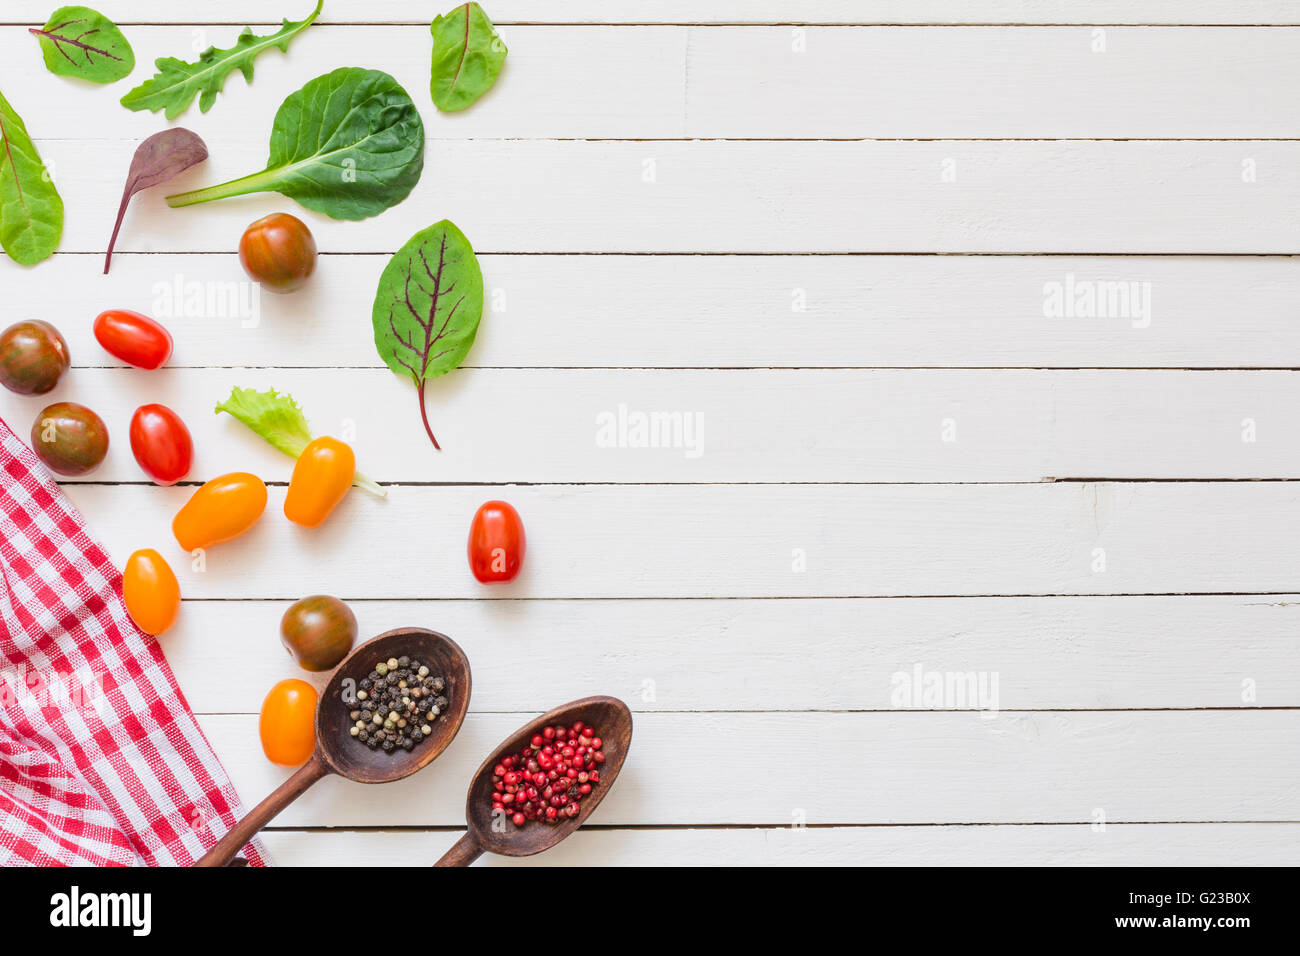 Vegetables spices and cooking utensils on white wooden background vegetables spices and cooking utensils on white wooden background mock up for recipes cook book food background forumfinder